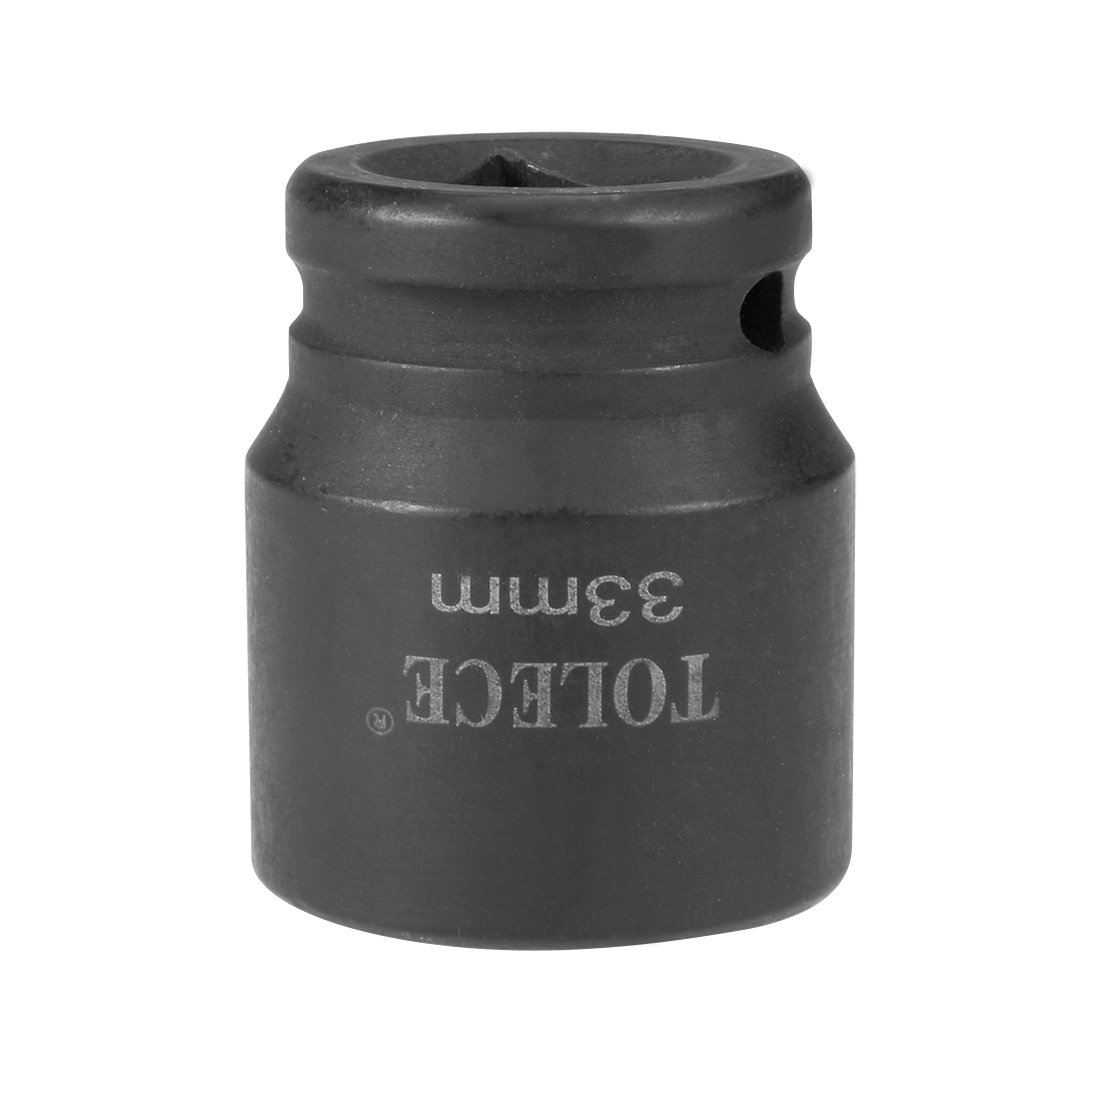 uxcell 3/4-inch Drive 33mm 6-Point Shallow Impact Socket, Cr-Mo Steel